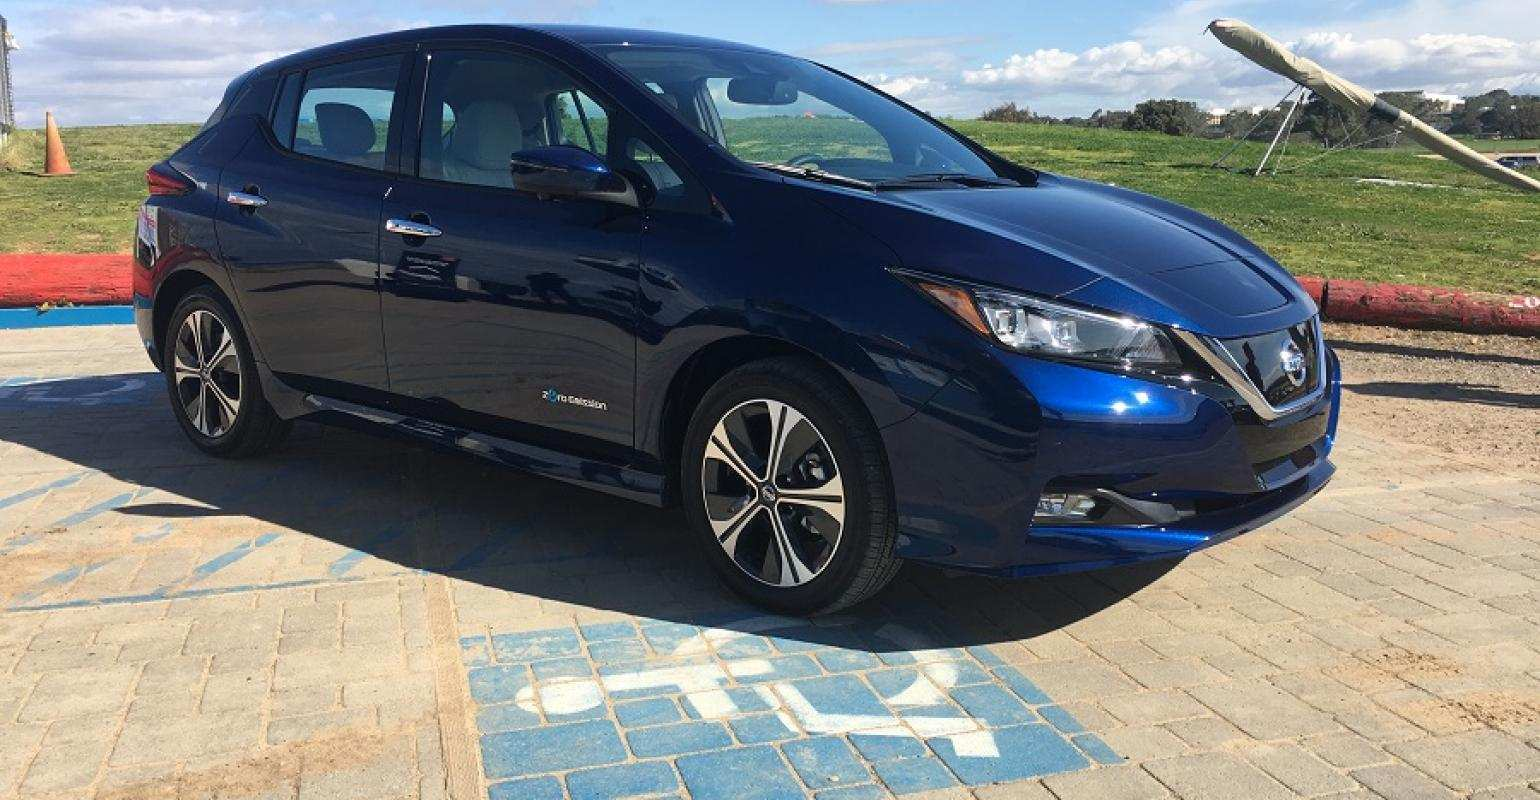 61 The 2019 Nissan Leaf Range Performance